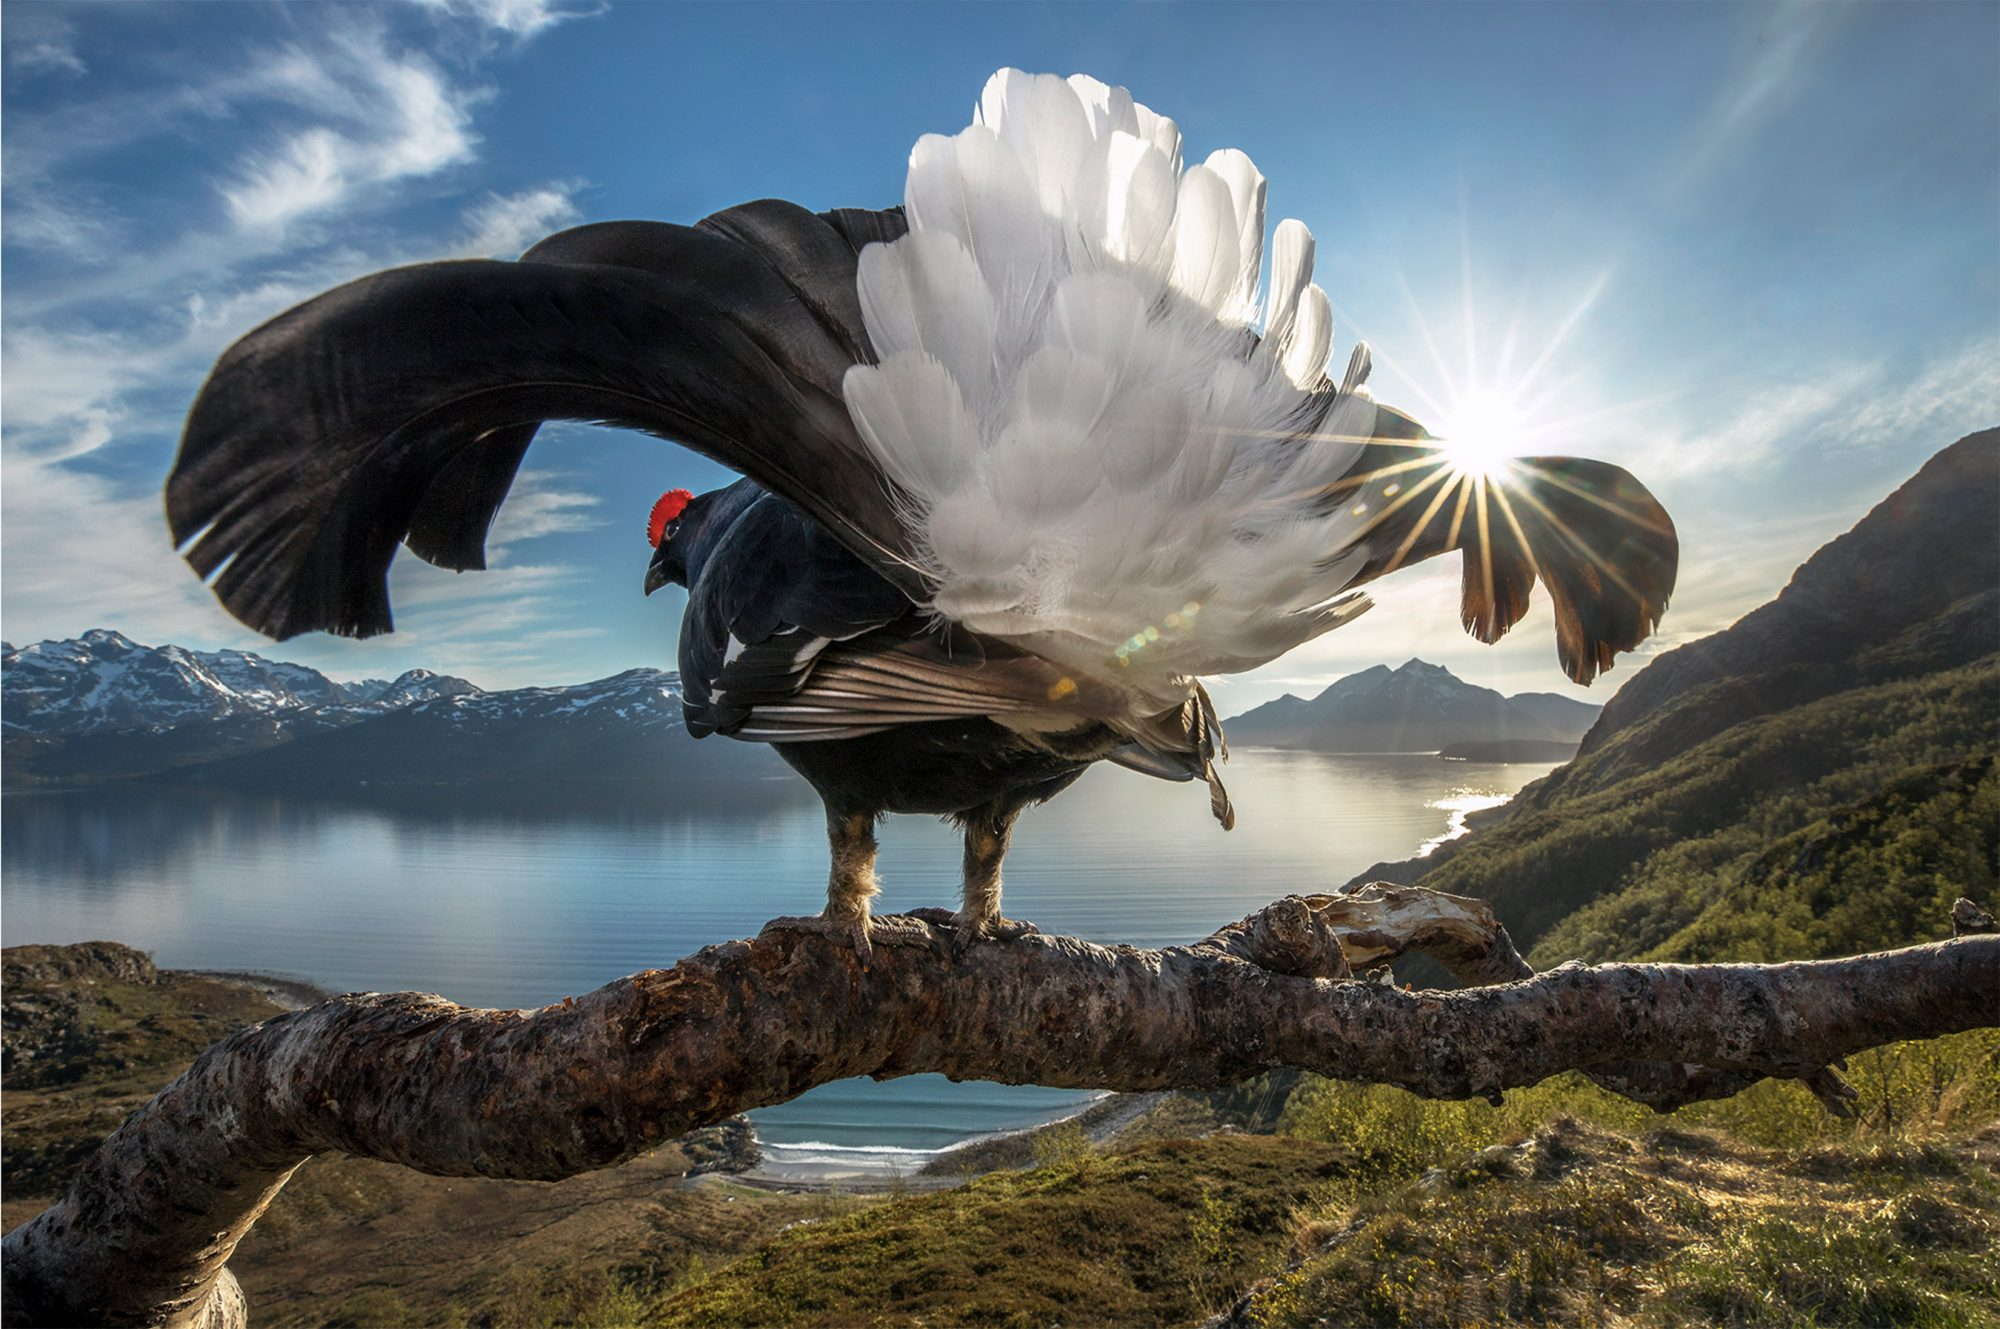 The Big Picture 2019 From the beautiful to the bizarre, this photographic showcase of life on Earth shines a light on some of our planet's most amazing species and places.